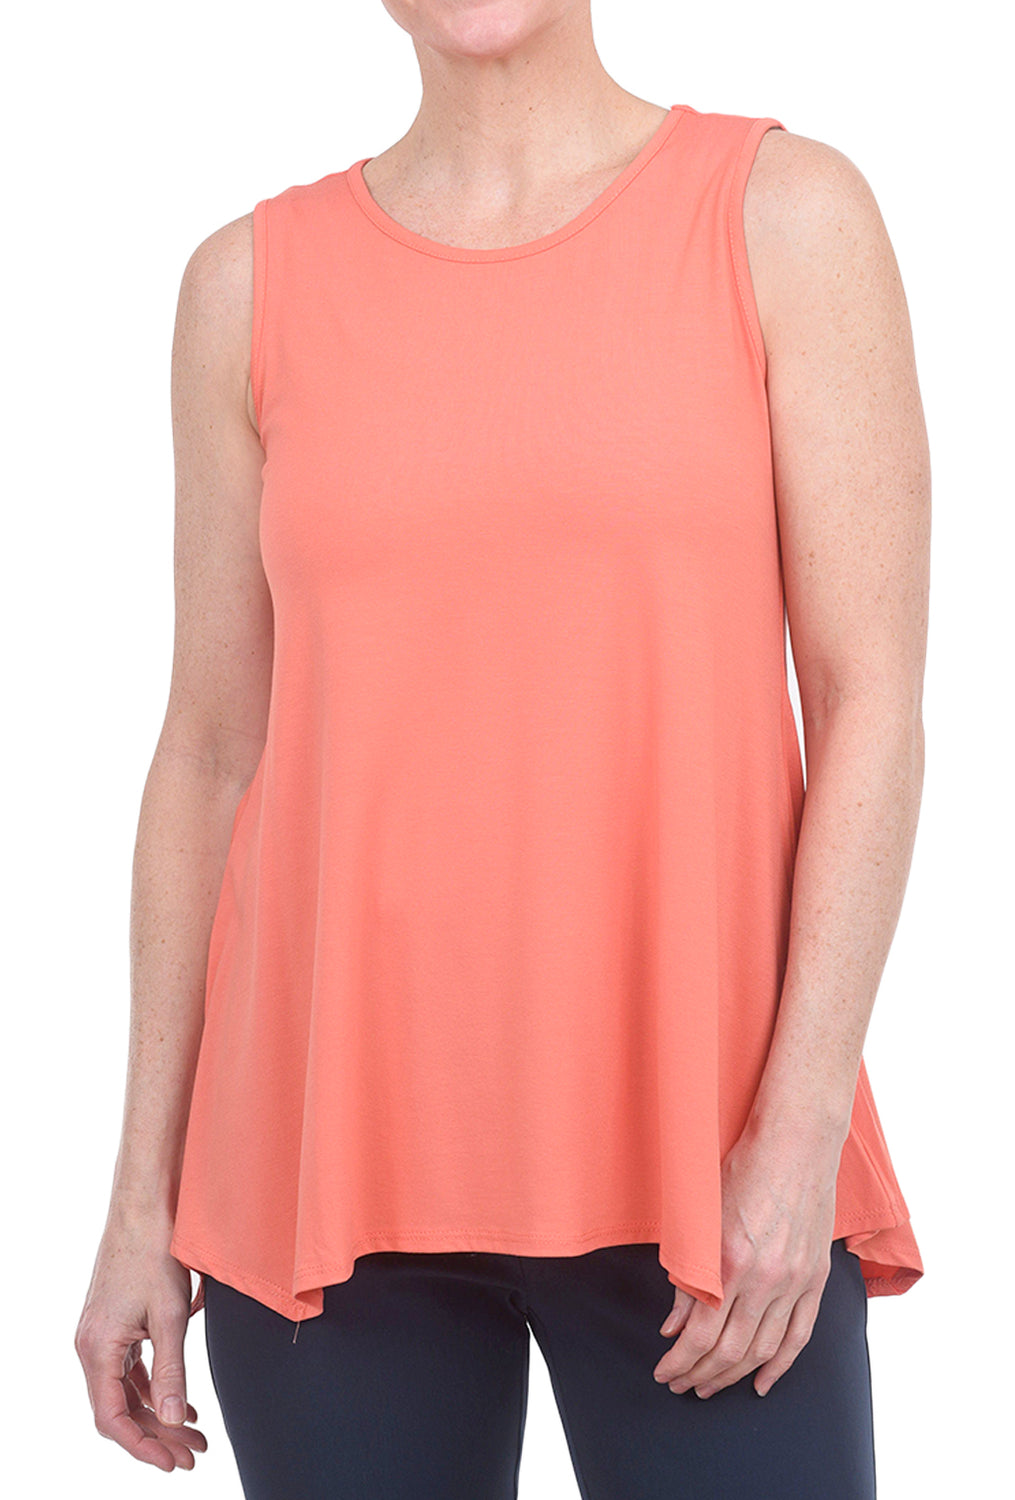 Estelle & Finn Fit and Flare Top, Mango